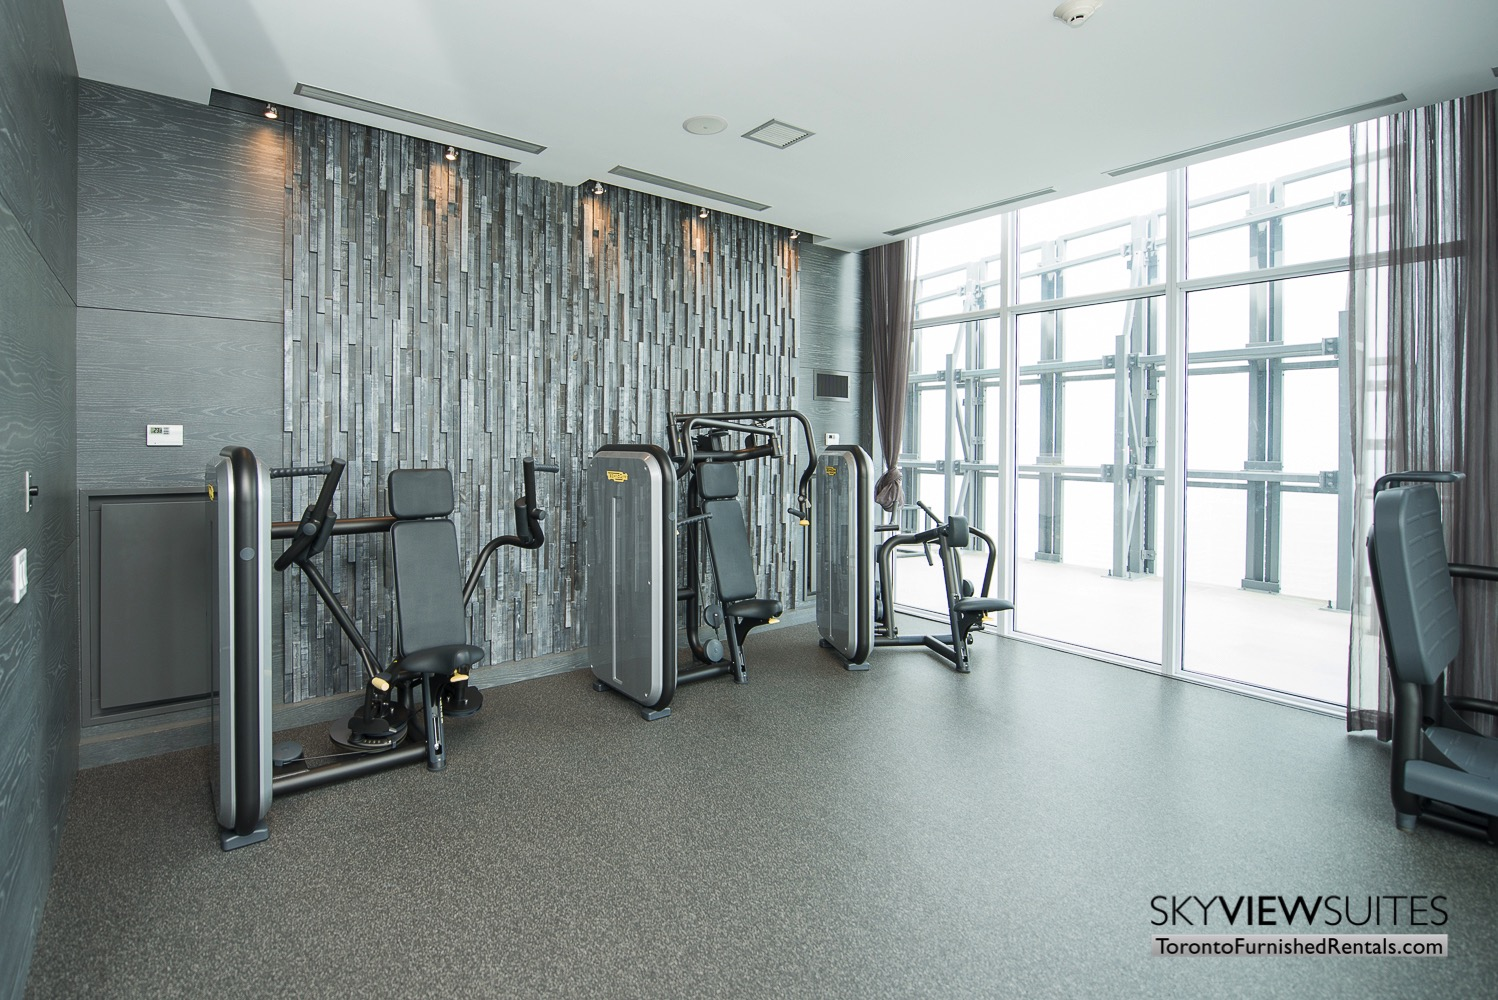 furnished apartments toronto Varsity fitness centre